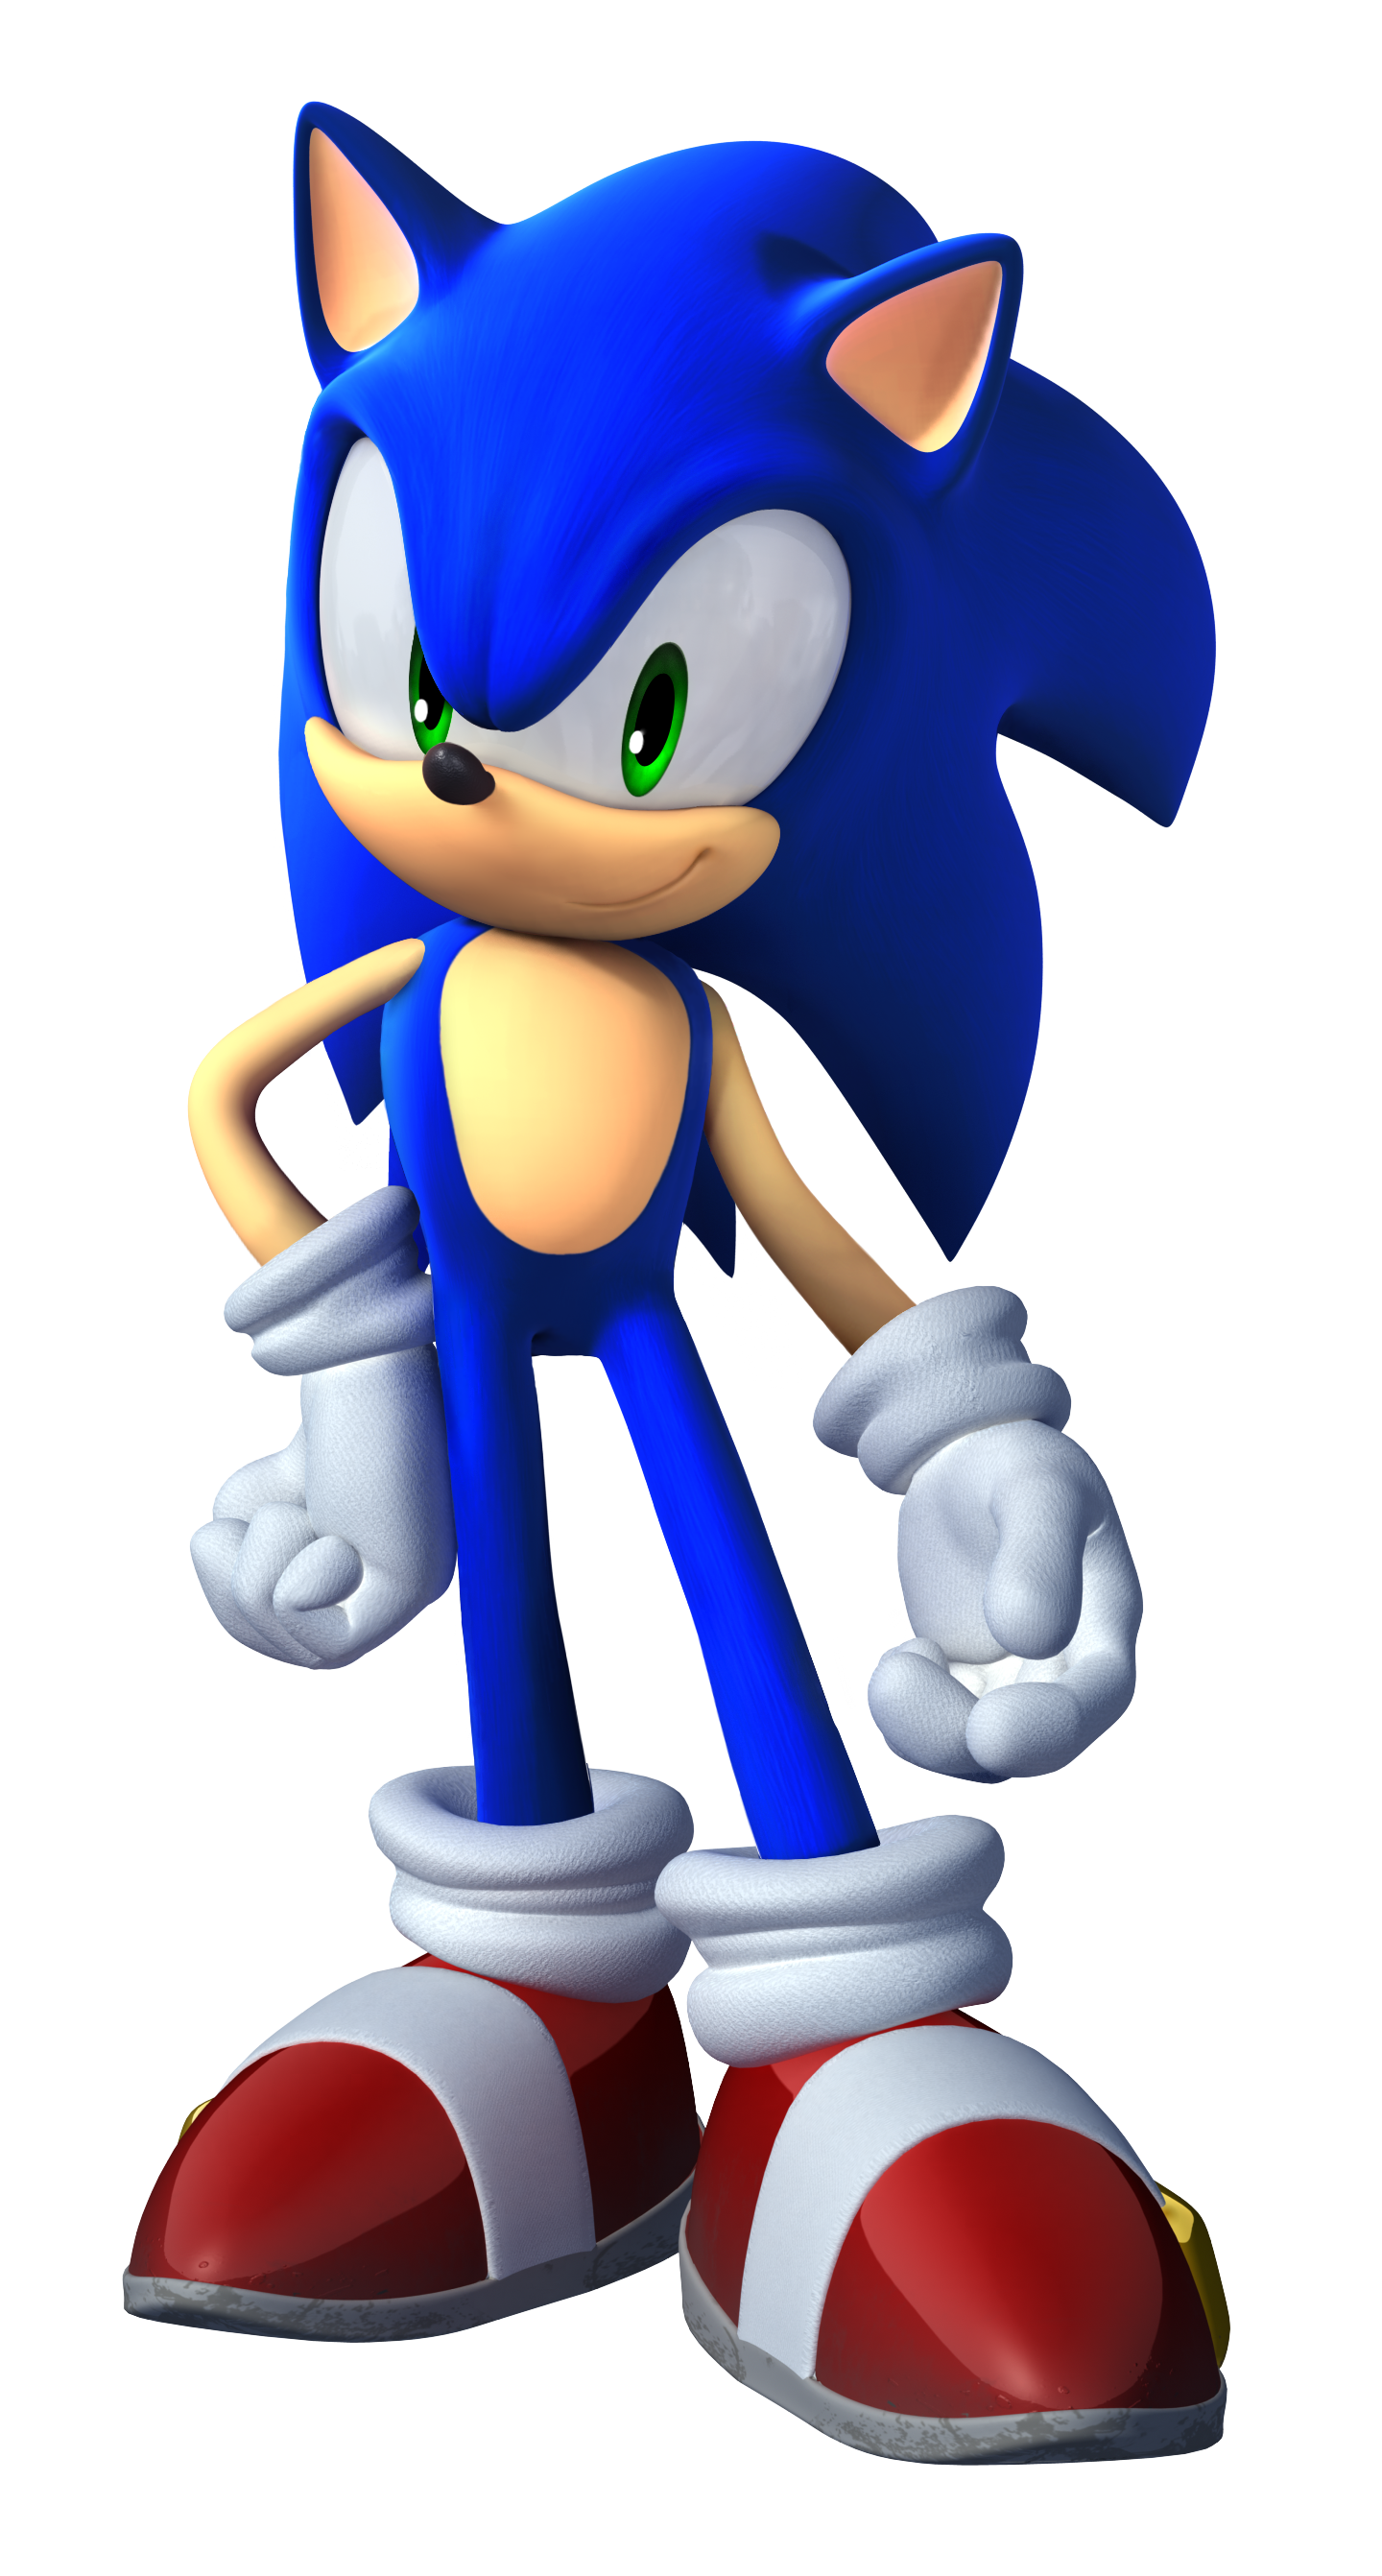 Sonic the Hedgehog: The Darkness Rises